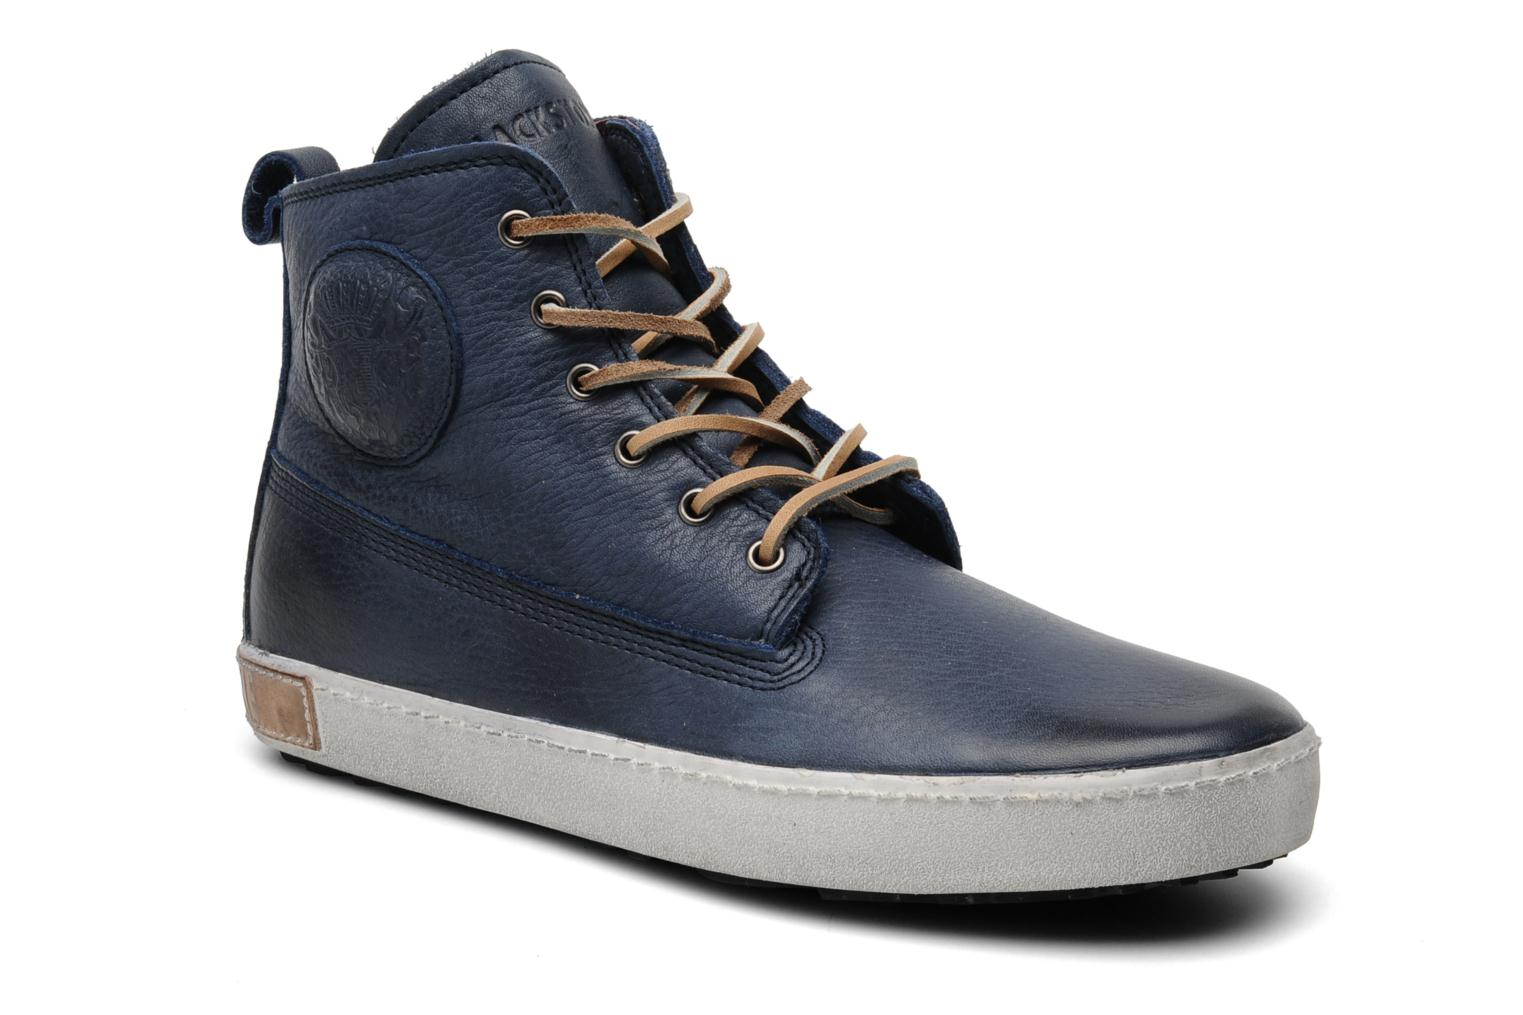 Sneakers 6 Inch Worker by Blackstone